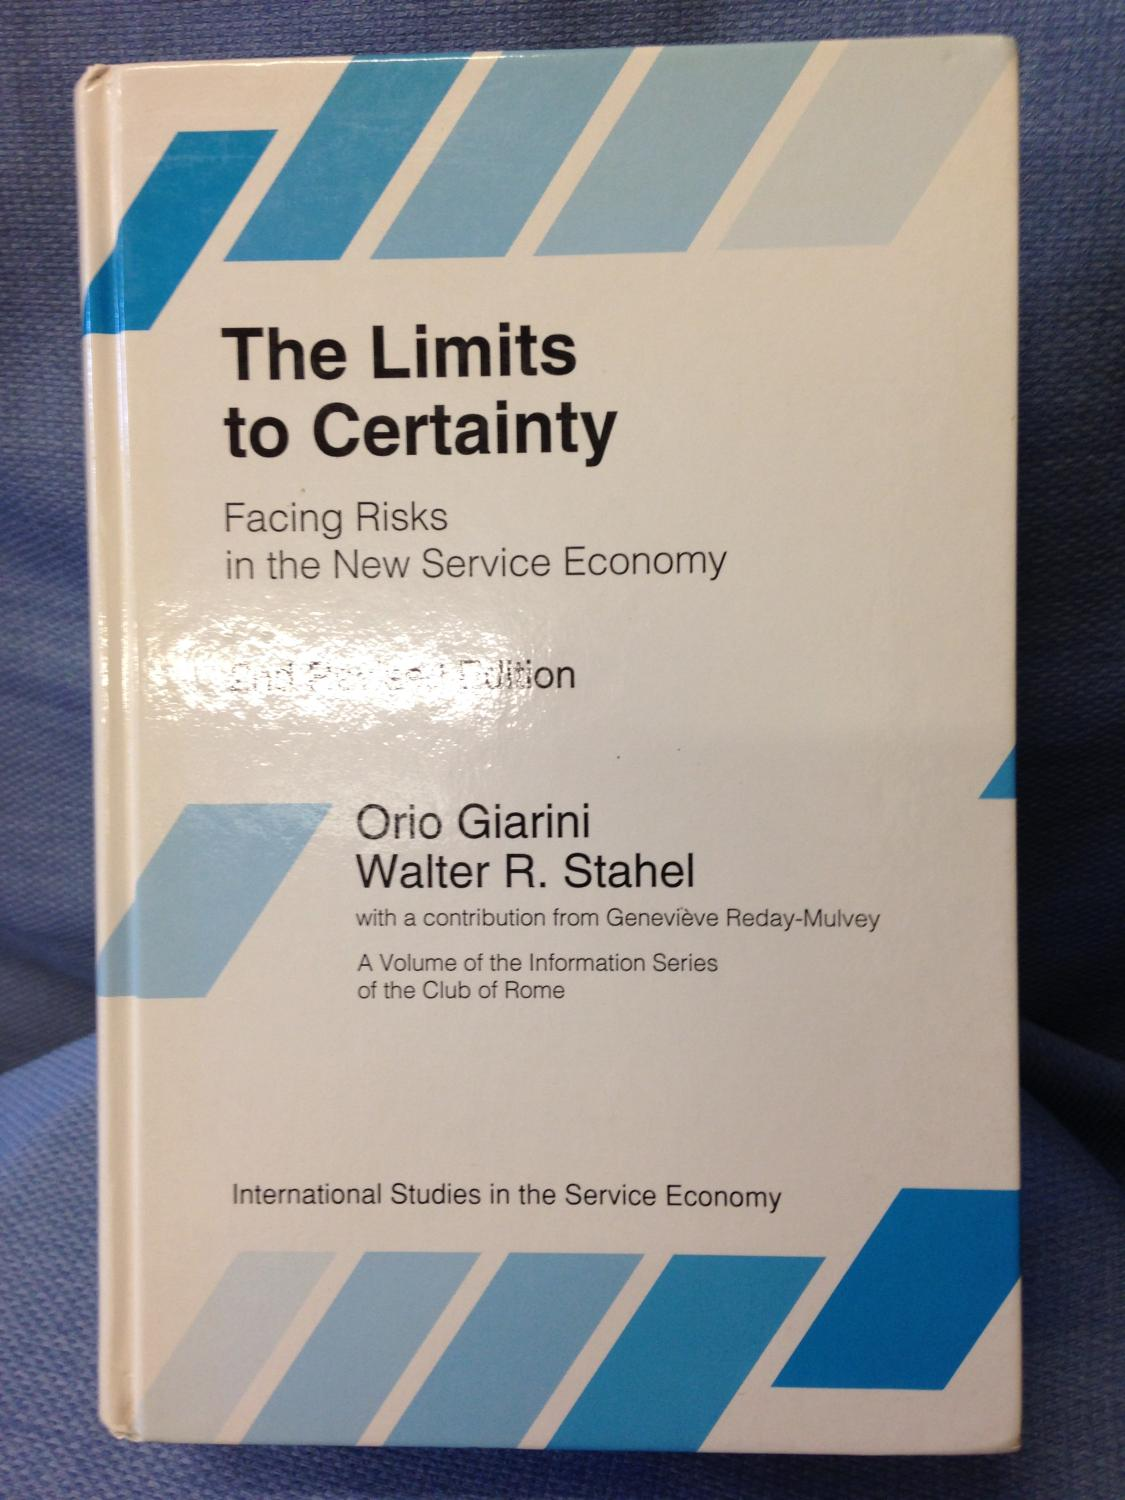 The Limits to Certainty: Facing Risks in the New Service Economy 2nd Revised Edition, A Volume of the Information Series of the Club of Rome *SIGNED* - Giarini, Orio and Walter R. Stahel, with a Contribution from Genevieve Reday-Mulvey